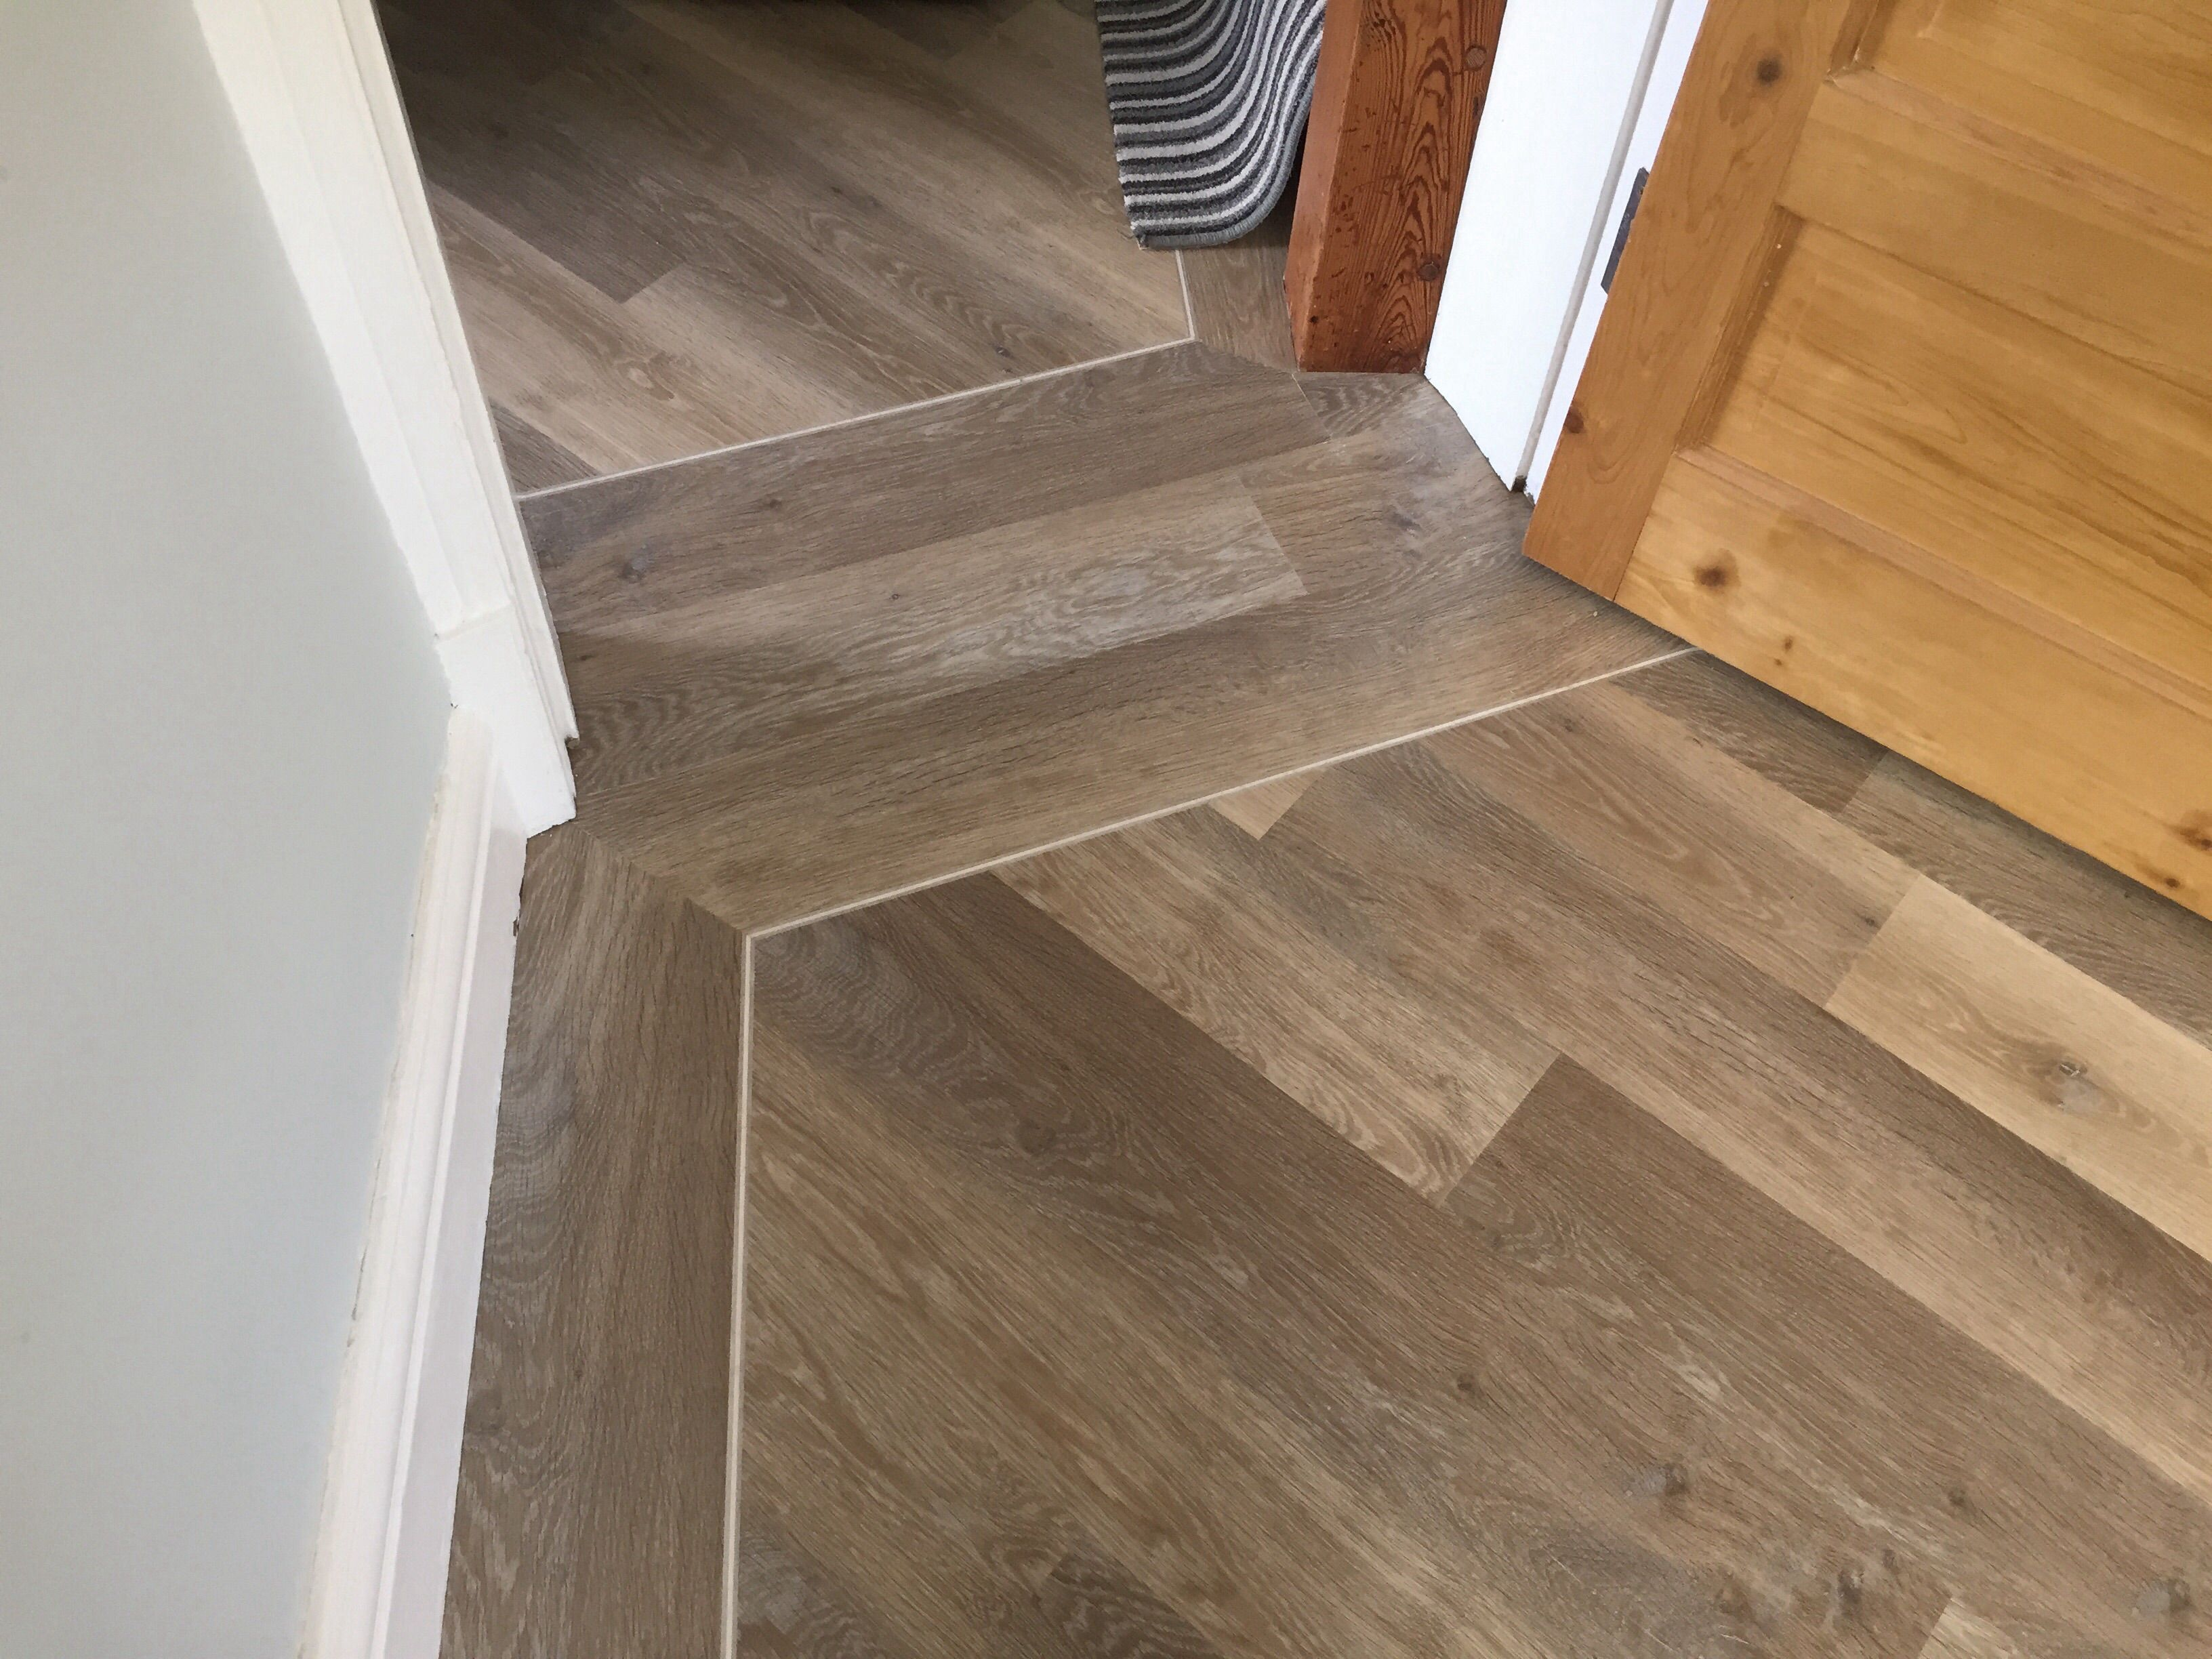 Karndean knight tile kp99 with treble border charcoalchalk karndean knight tile kp99 with treble border charcoalchalkcharcoal by touchwood flooring services dailygadgetfo Gallery